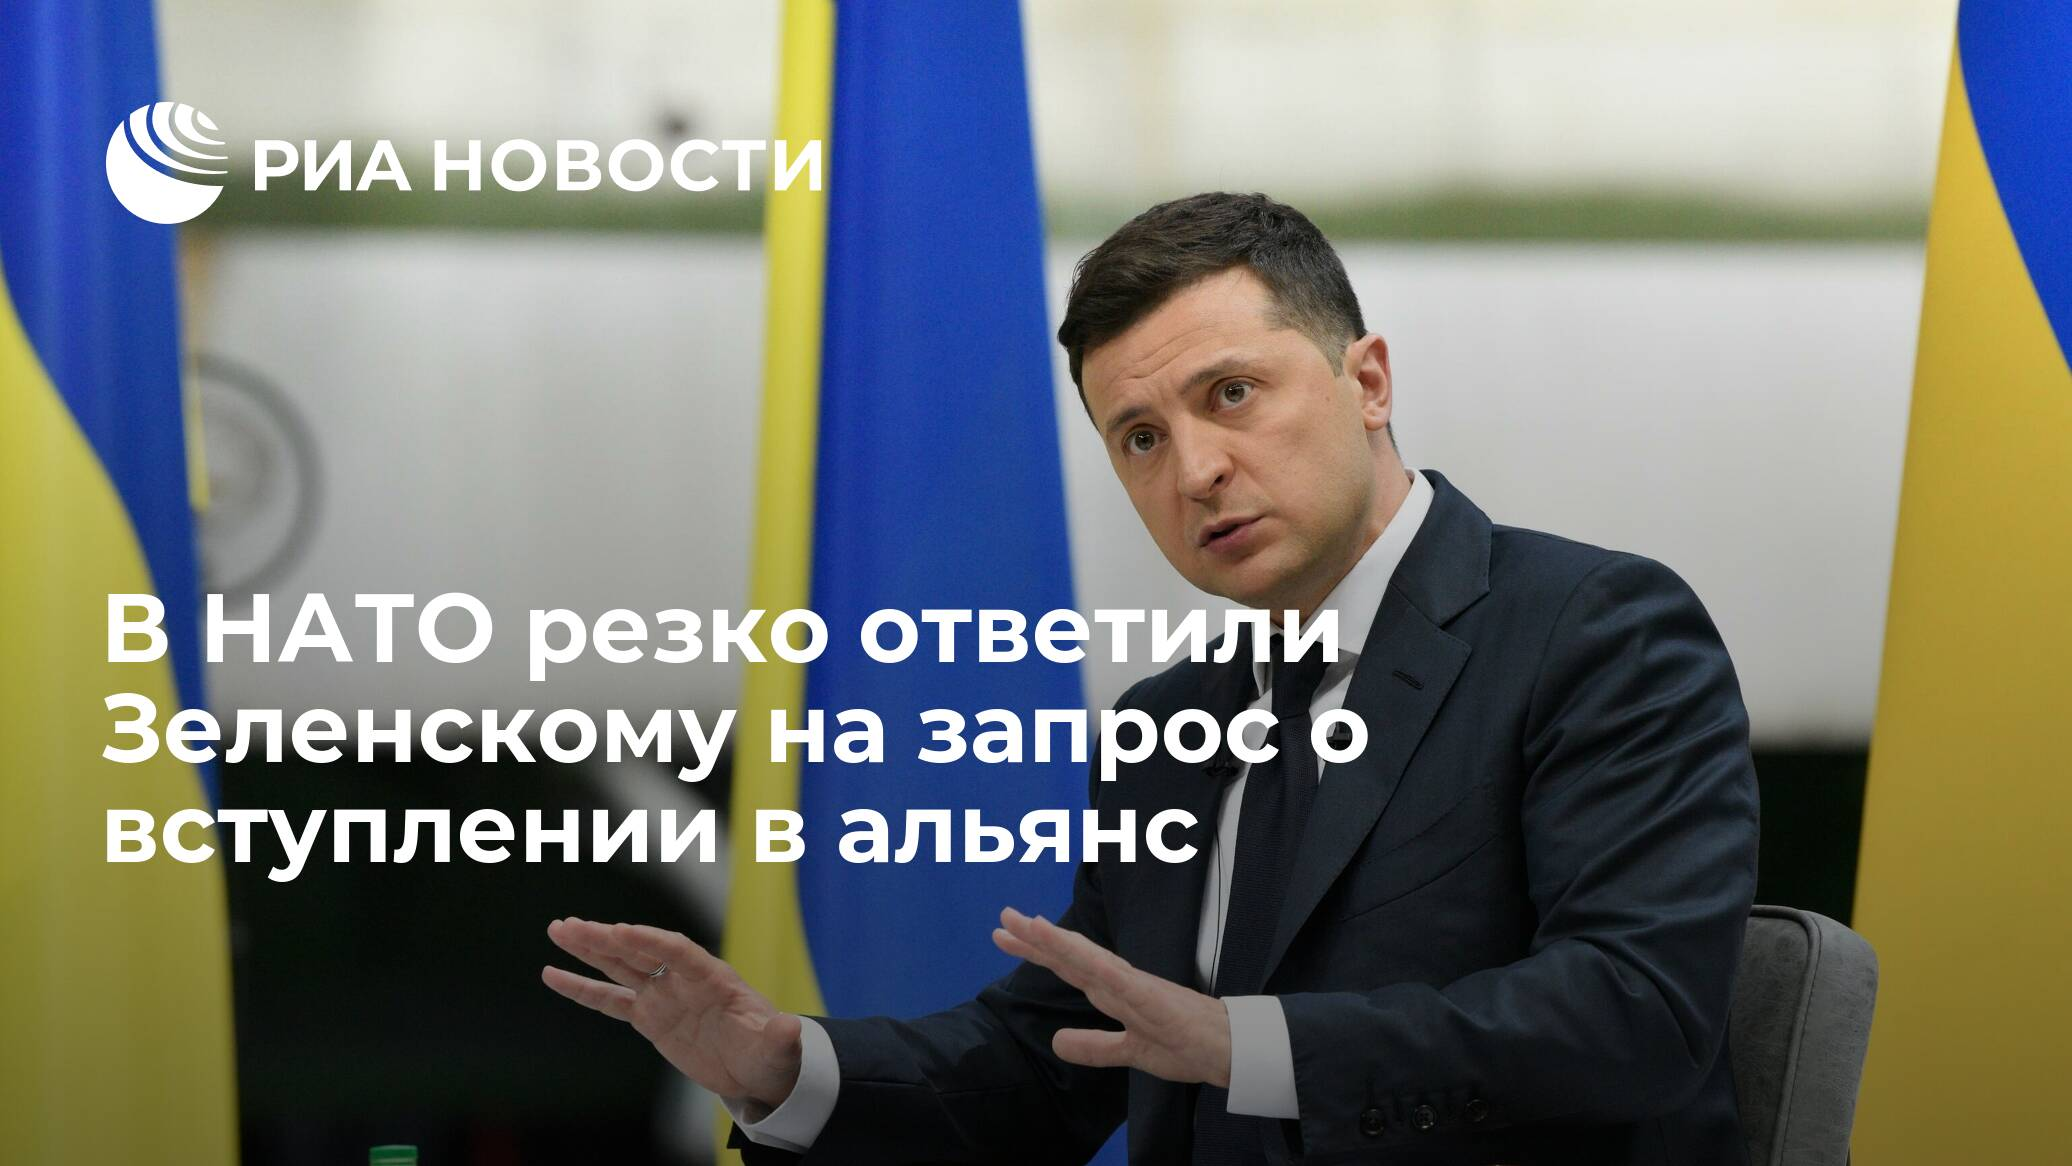 NATO responded sharply to Zelensky's request to join the alliance